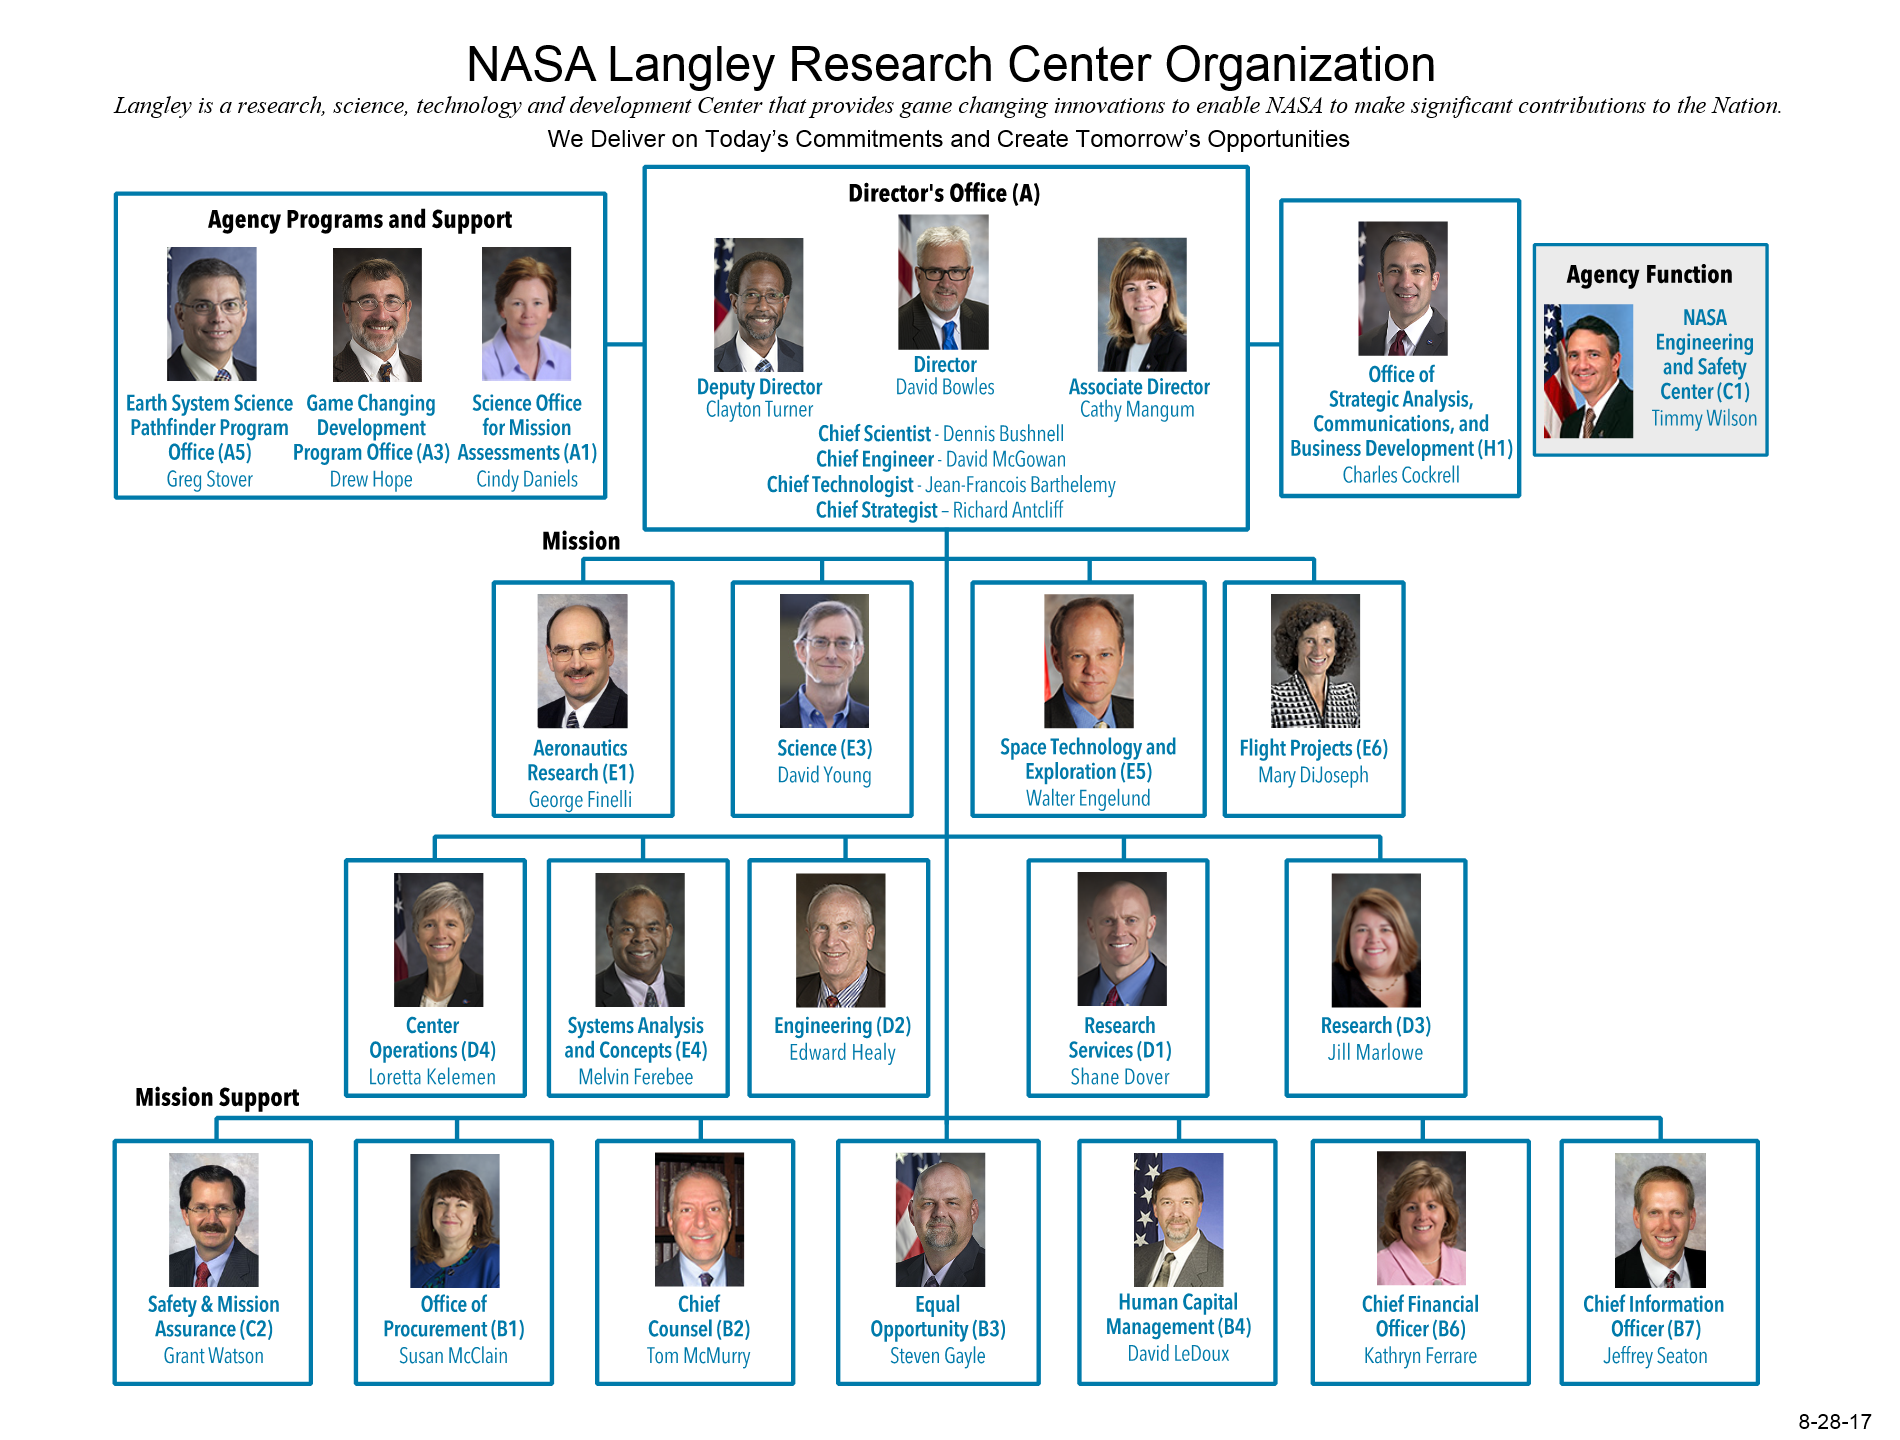 nasa langley research center organizational chart august 2017 - Picture Org Chart